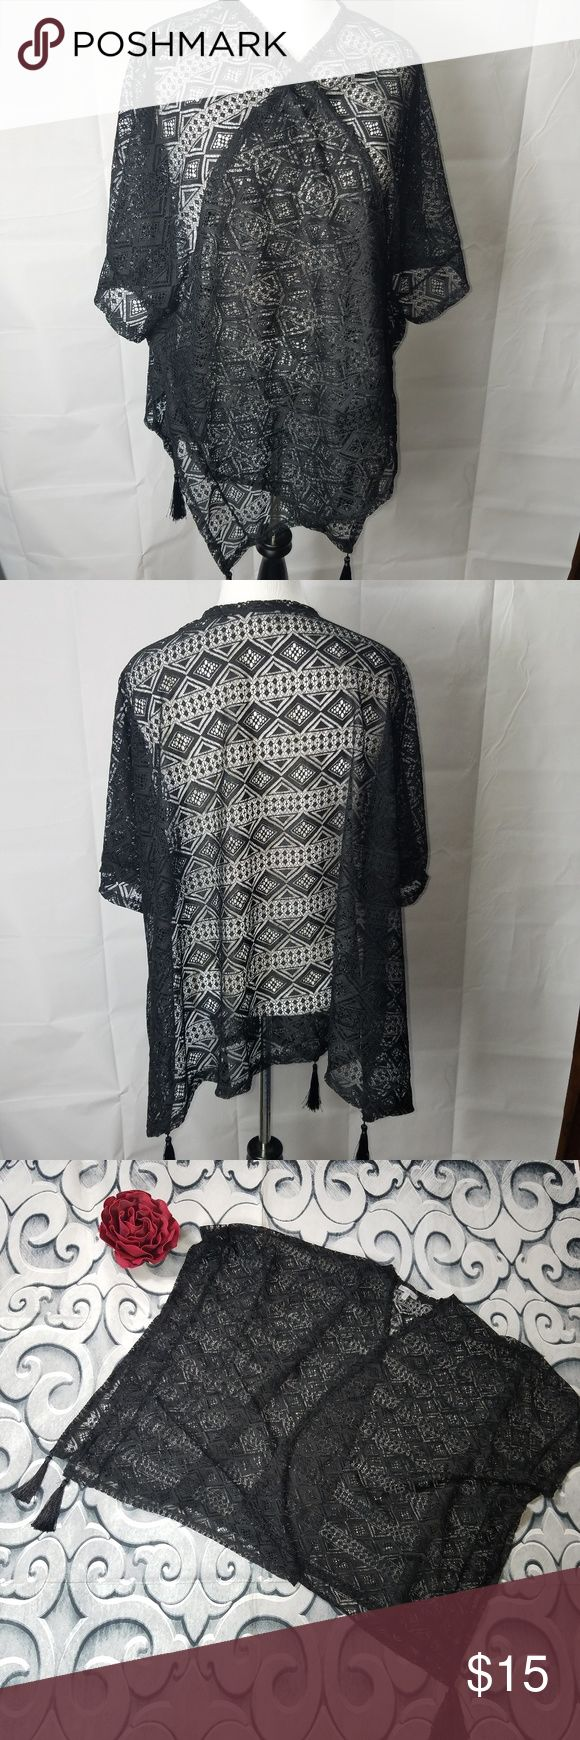 Black Oversized Lace Shawl with Tassels Charlotte Ruse Black Oversized Lace Shawl with Tassels Size Large  Flower not included Charlotte Russe Tops